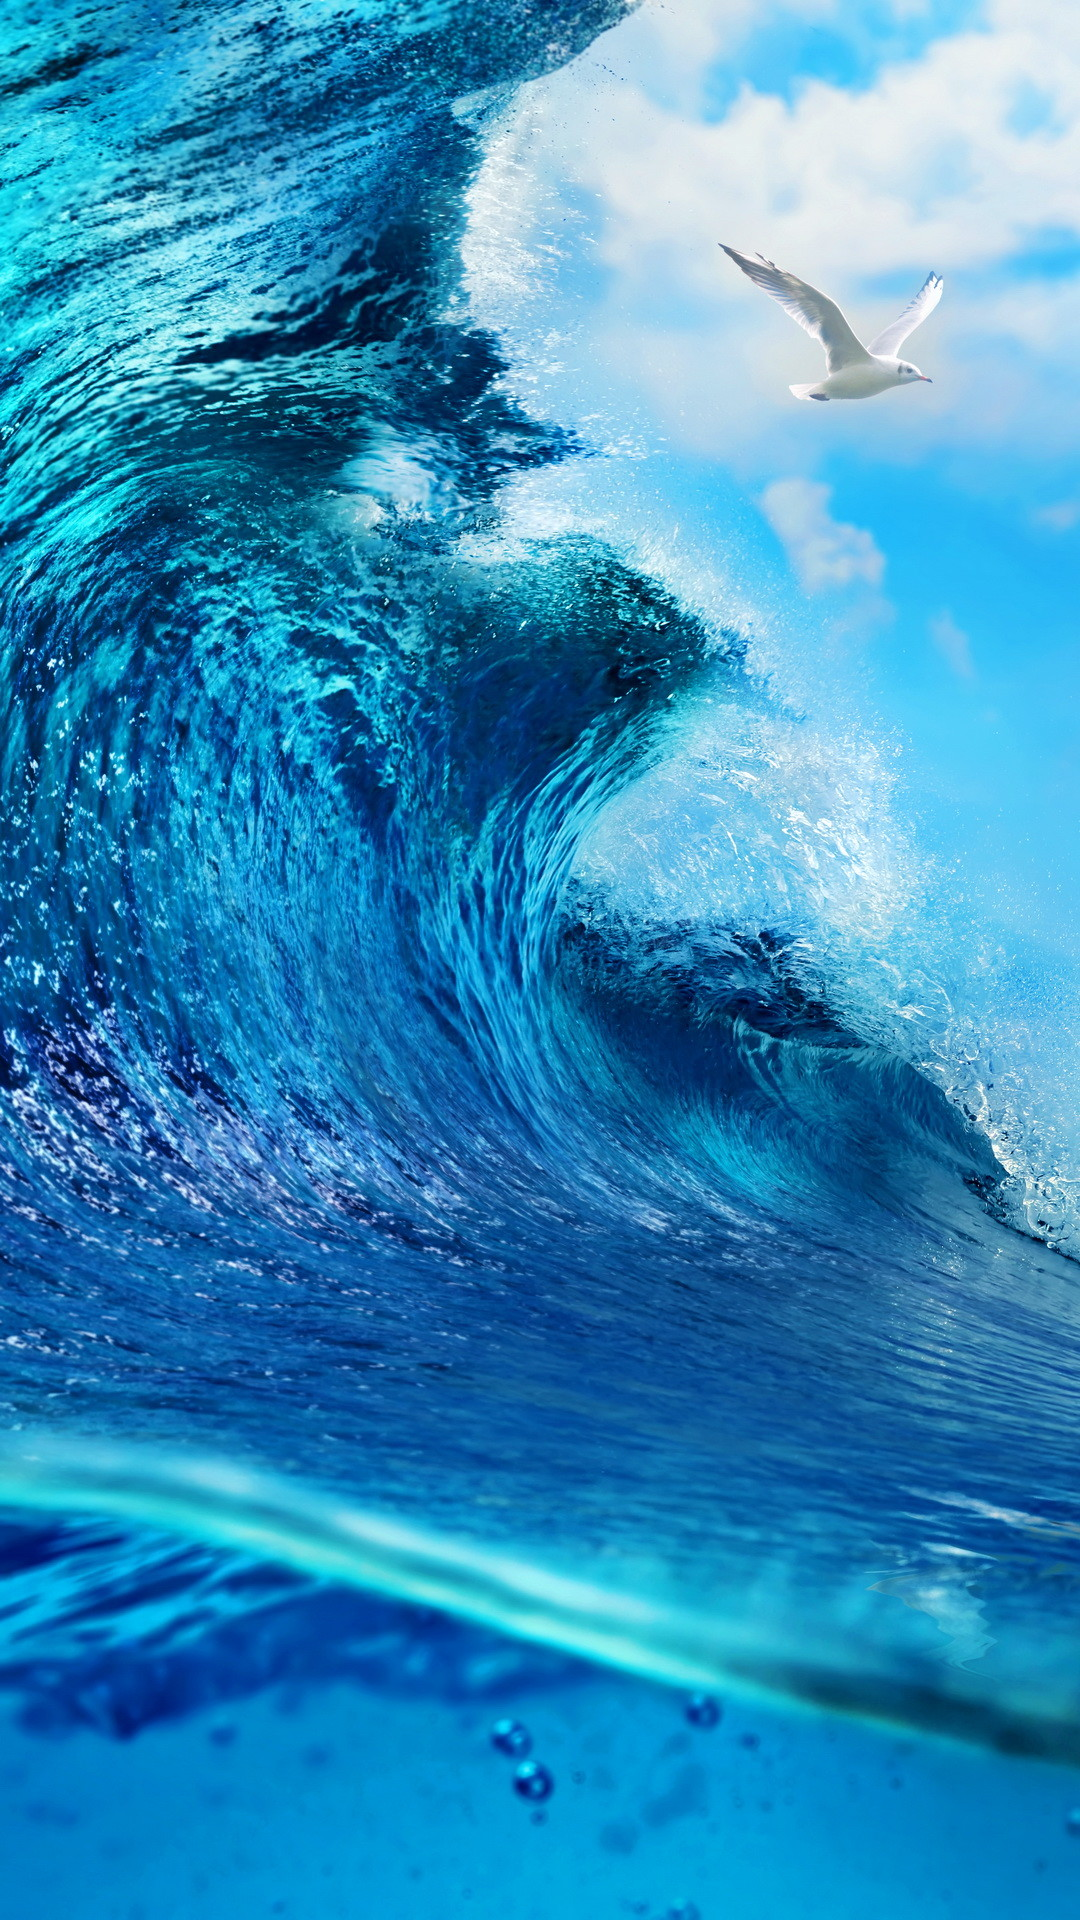 Waves Wallpaper (70+ pictures)